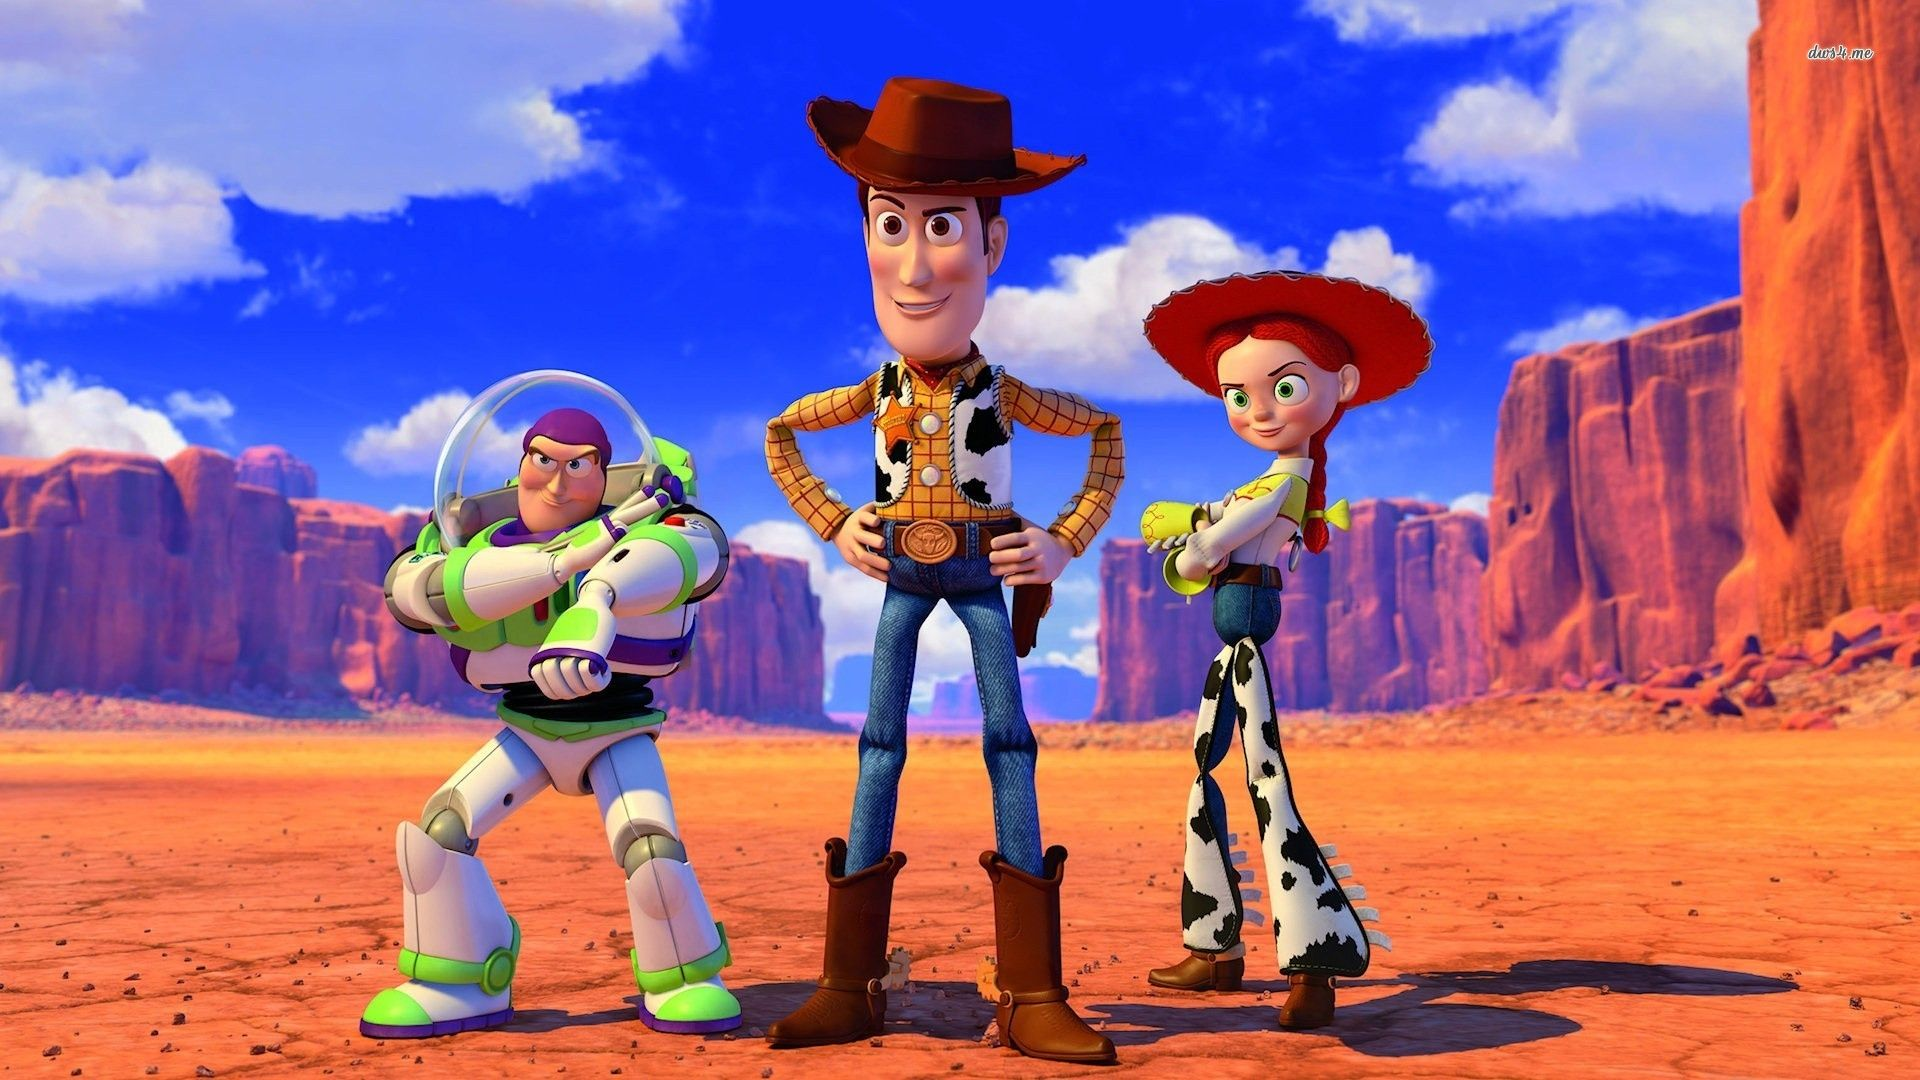 Toy Story Aliens iPhone Wallpaper iPod Wallpaper HD Free